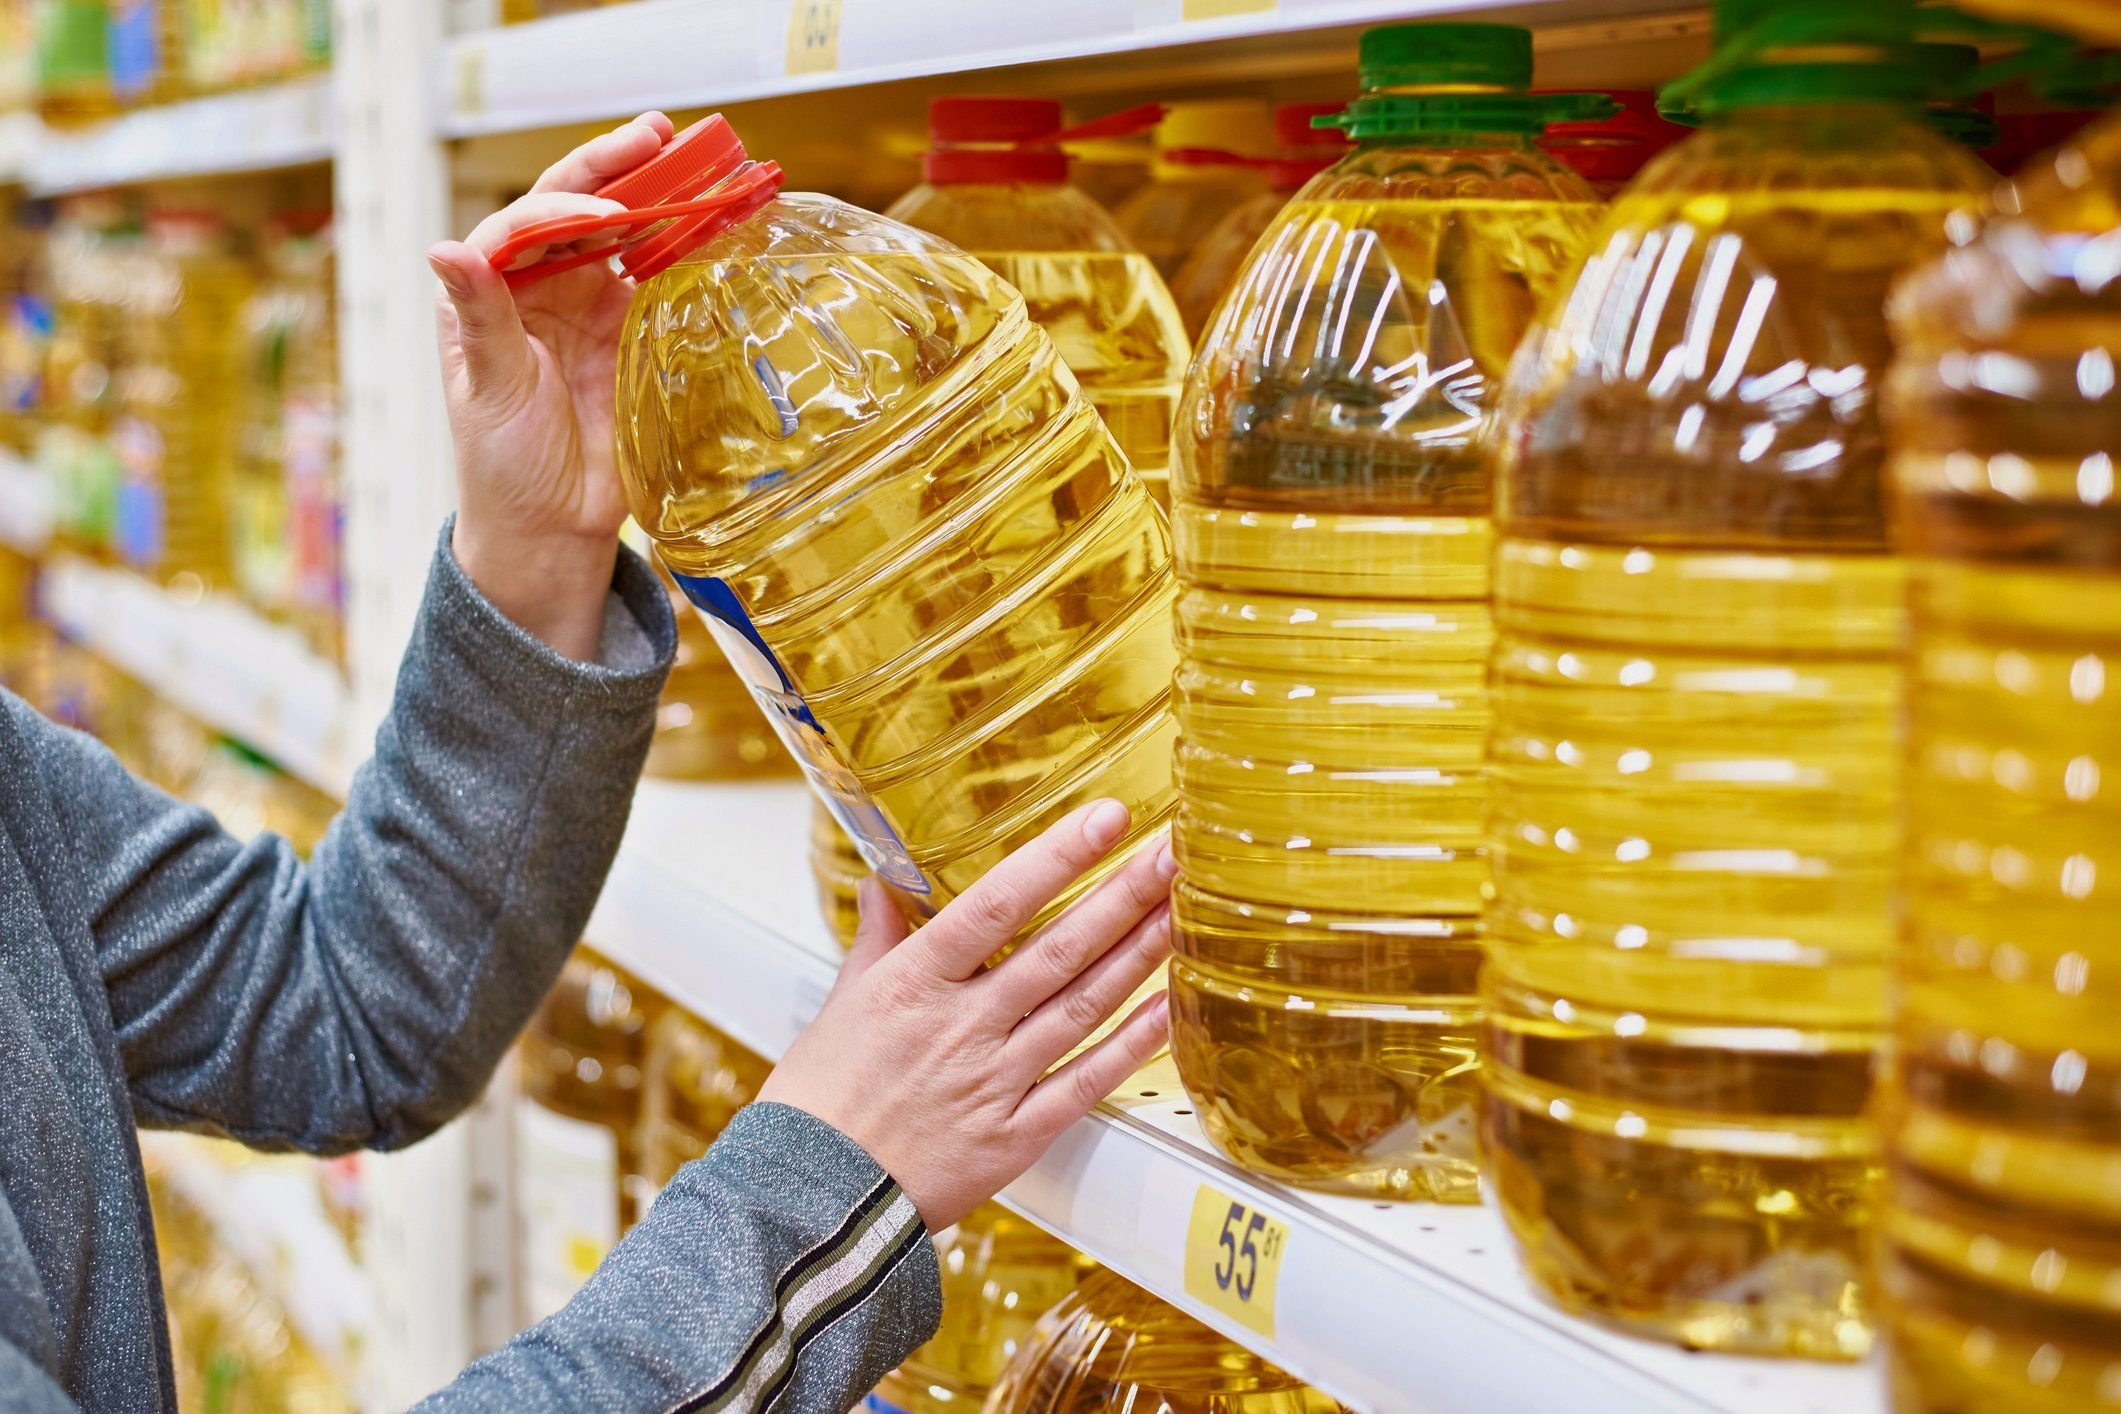 canola oil vs vegetable oil| Confused about the difference between canola and vegewoman taking large bottle of oil off of shelf at grocery store